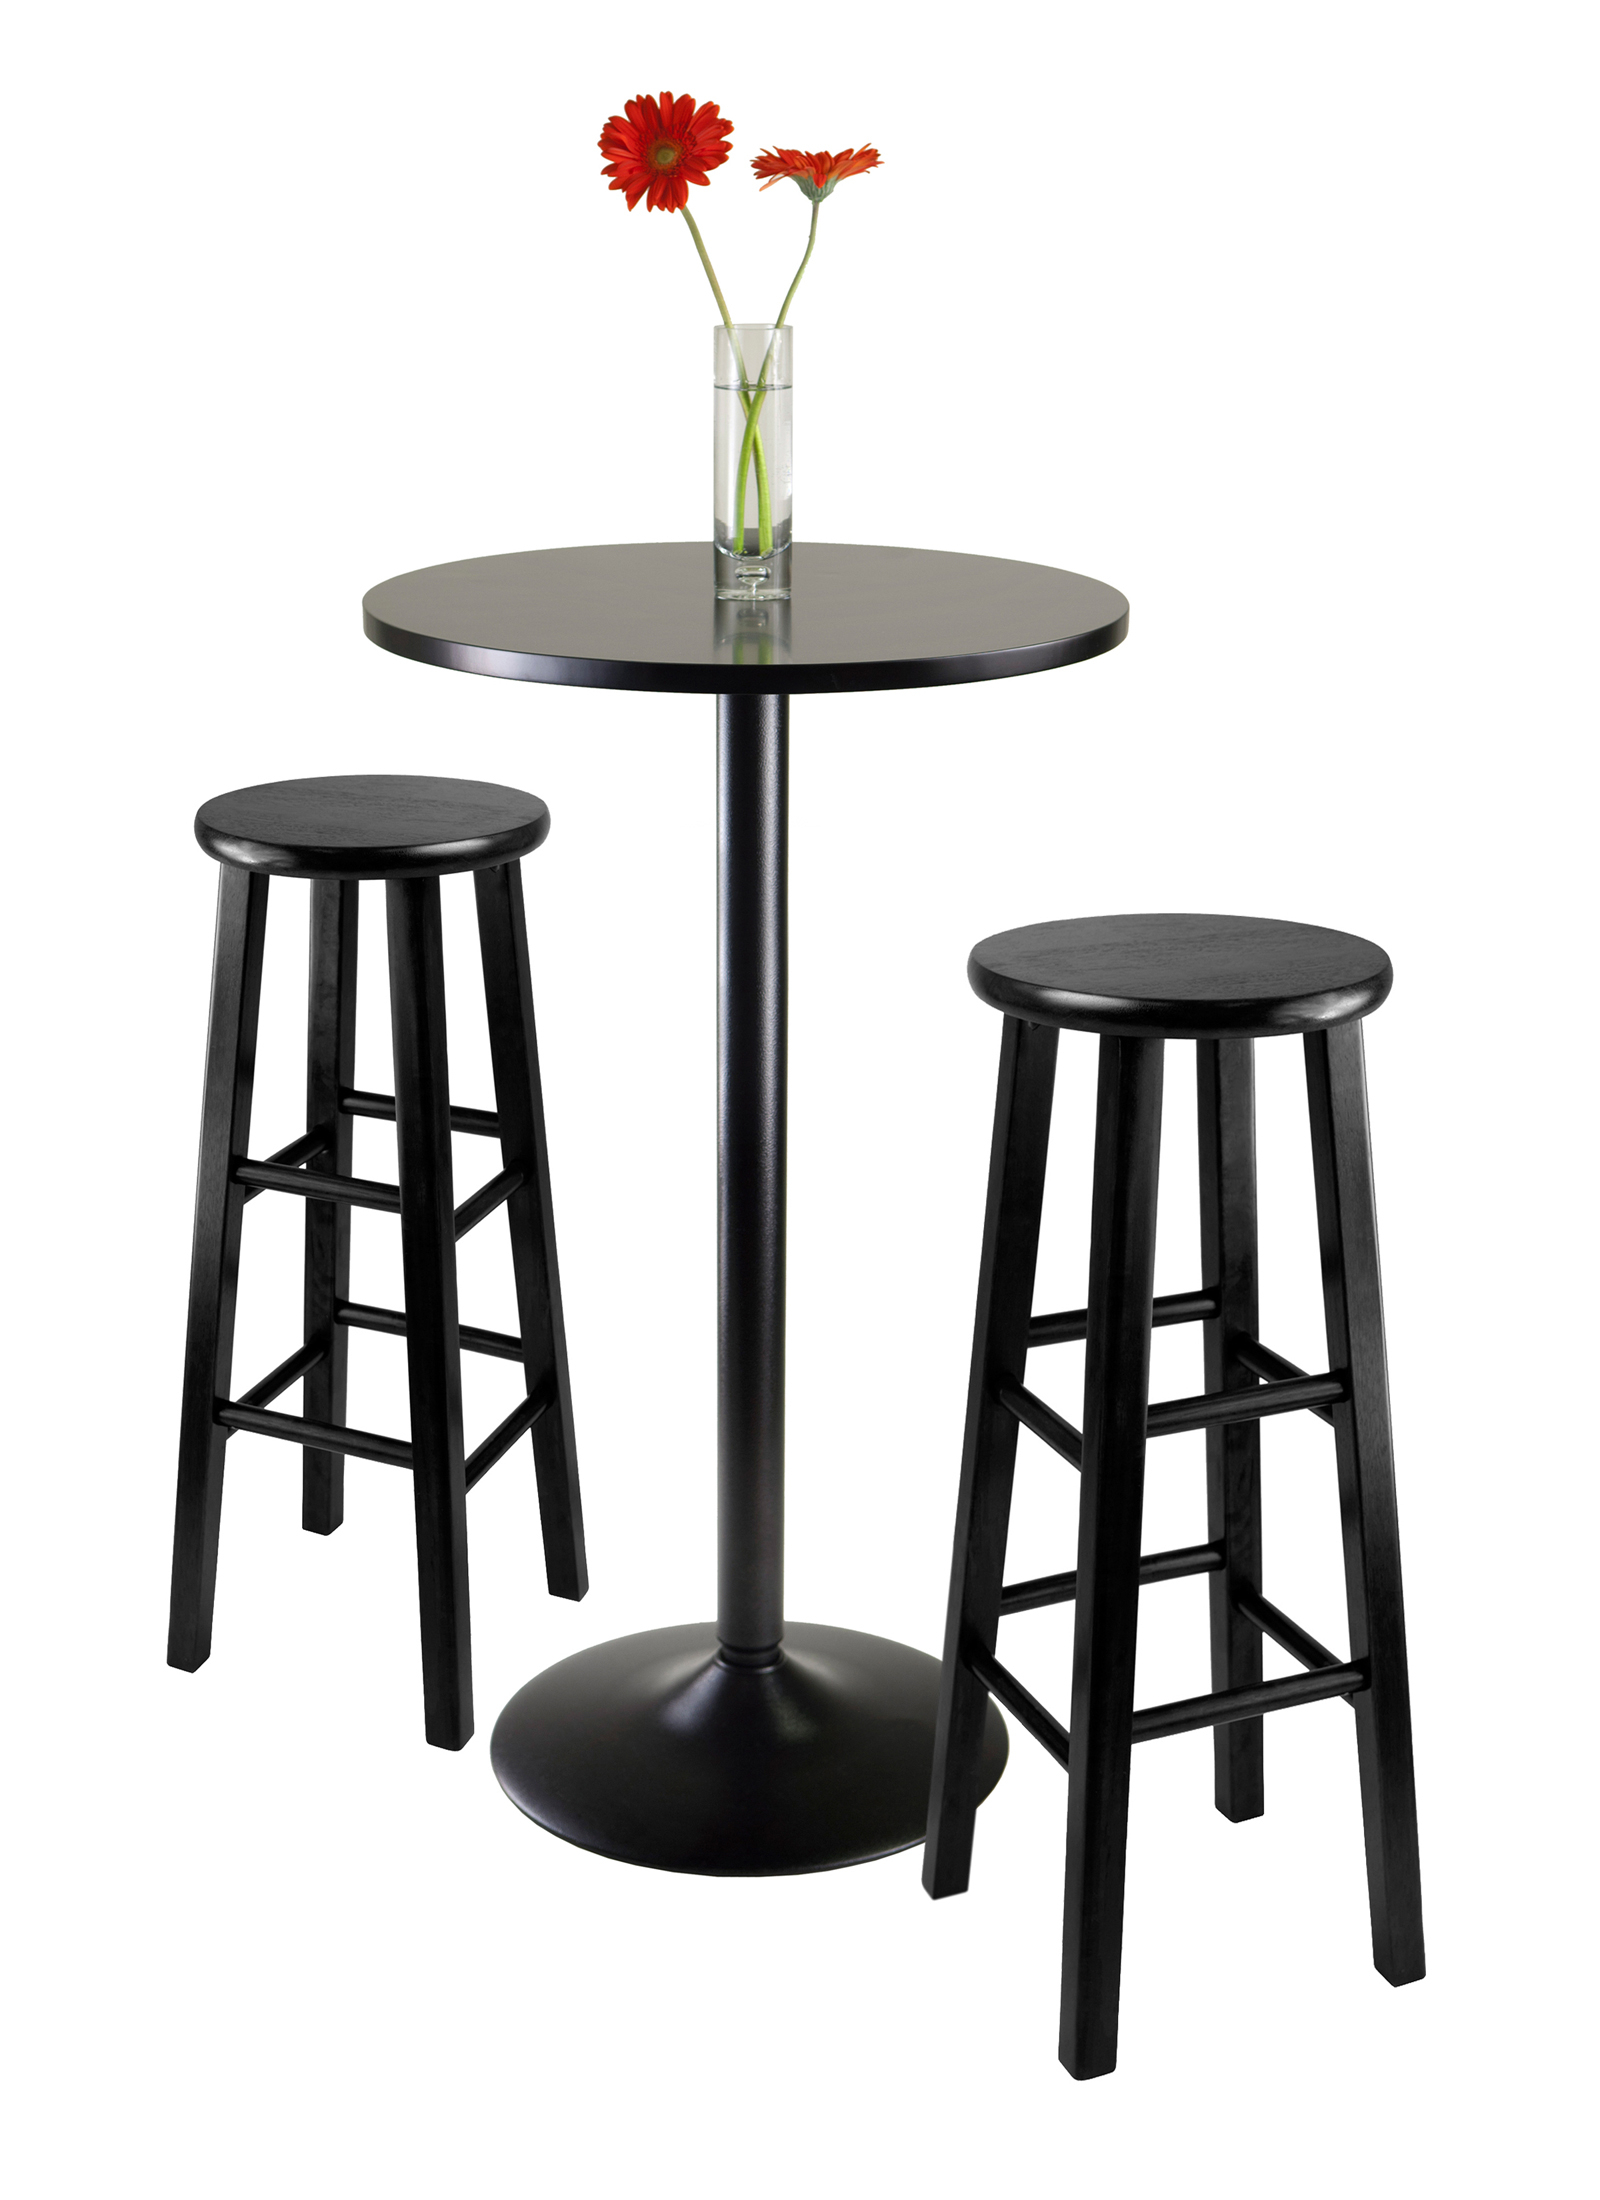 Most Popular Winsome Wood Obsidian 3 Piece Round Black Pub Table Set With Regard To Winsome 3 Piece Counter Height Dining Sets (View 9 of 20)